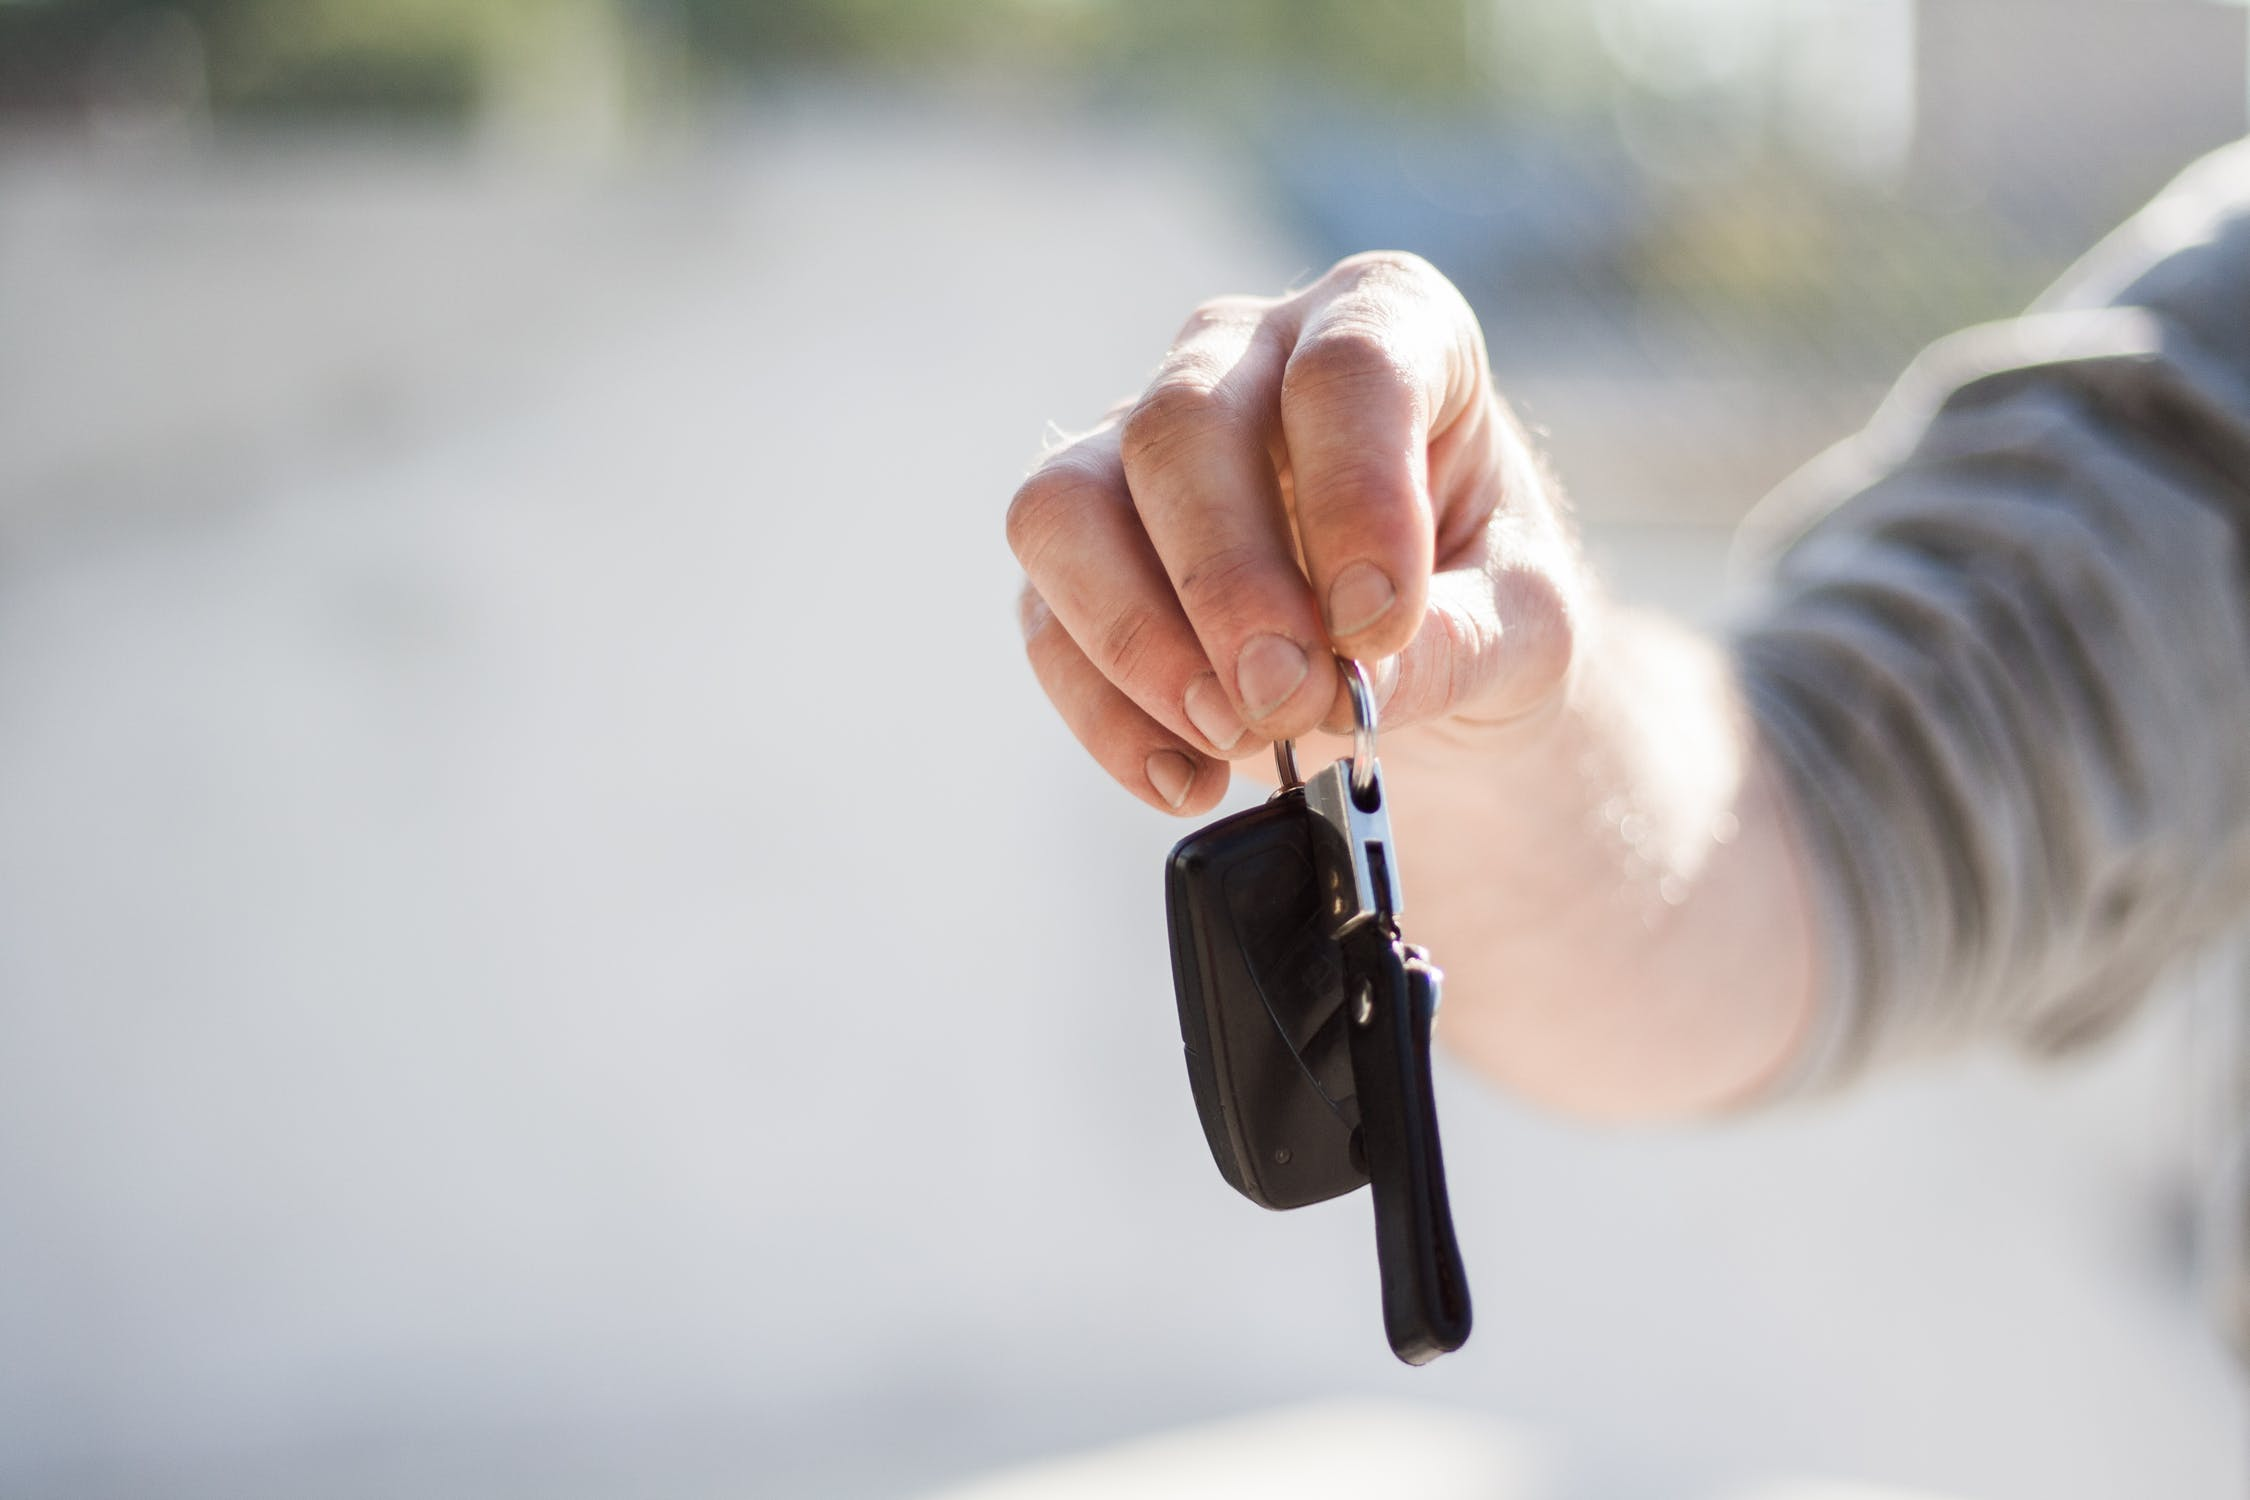 New or Used Vehicles: Why Both Are Great Options